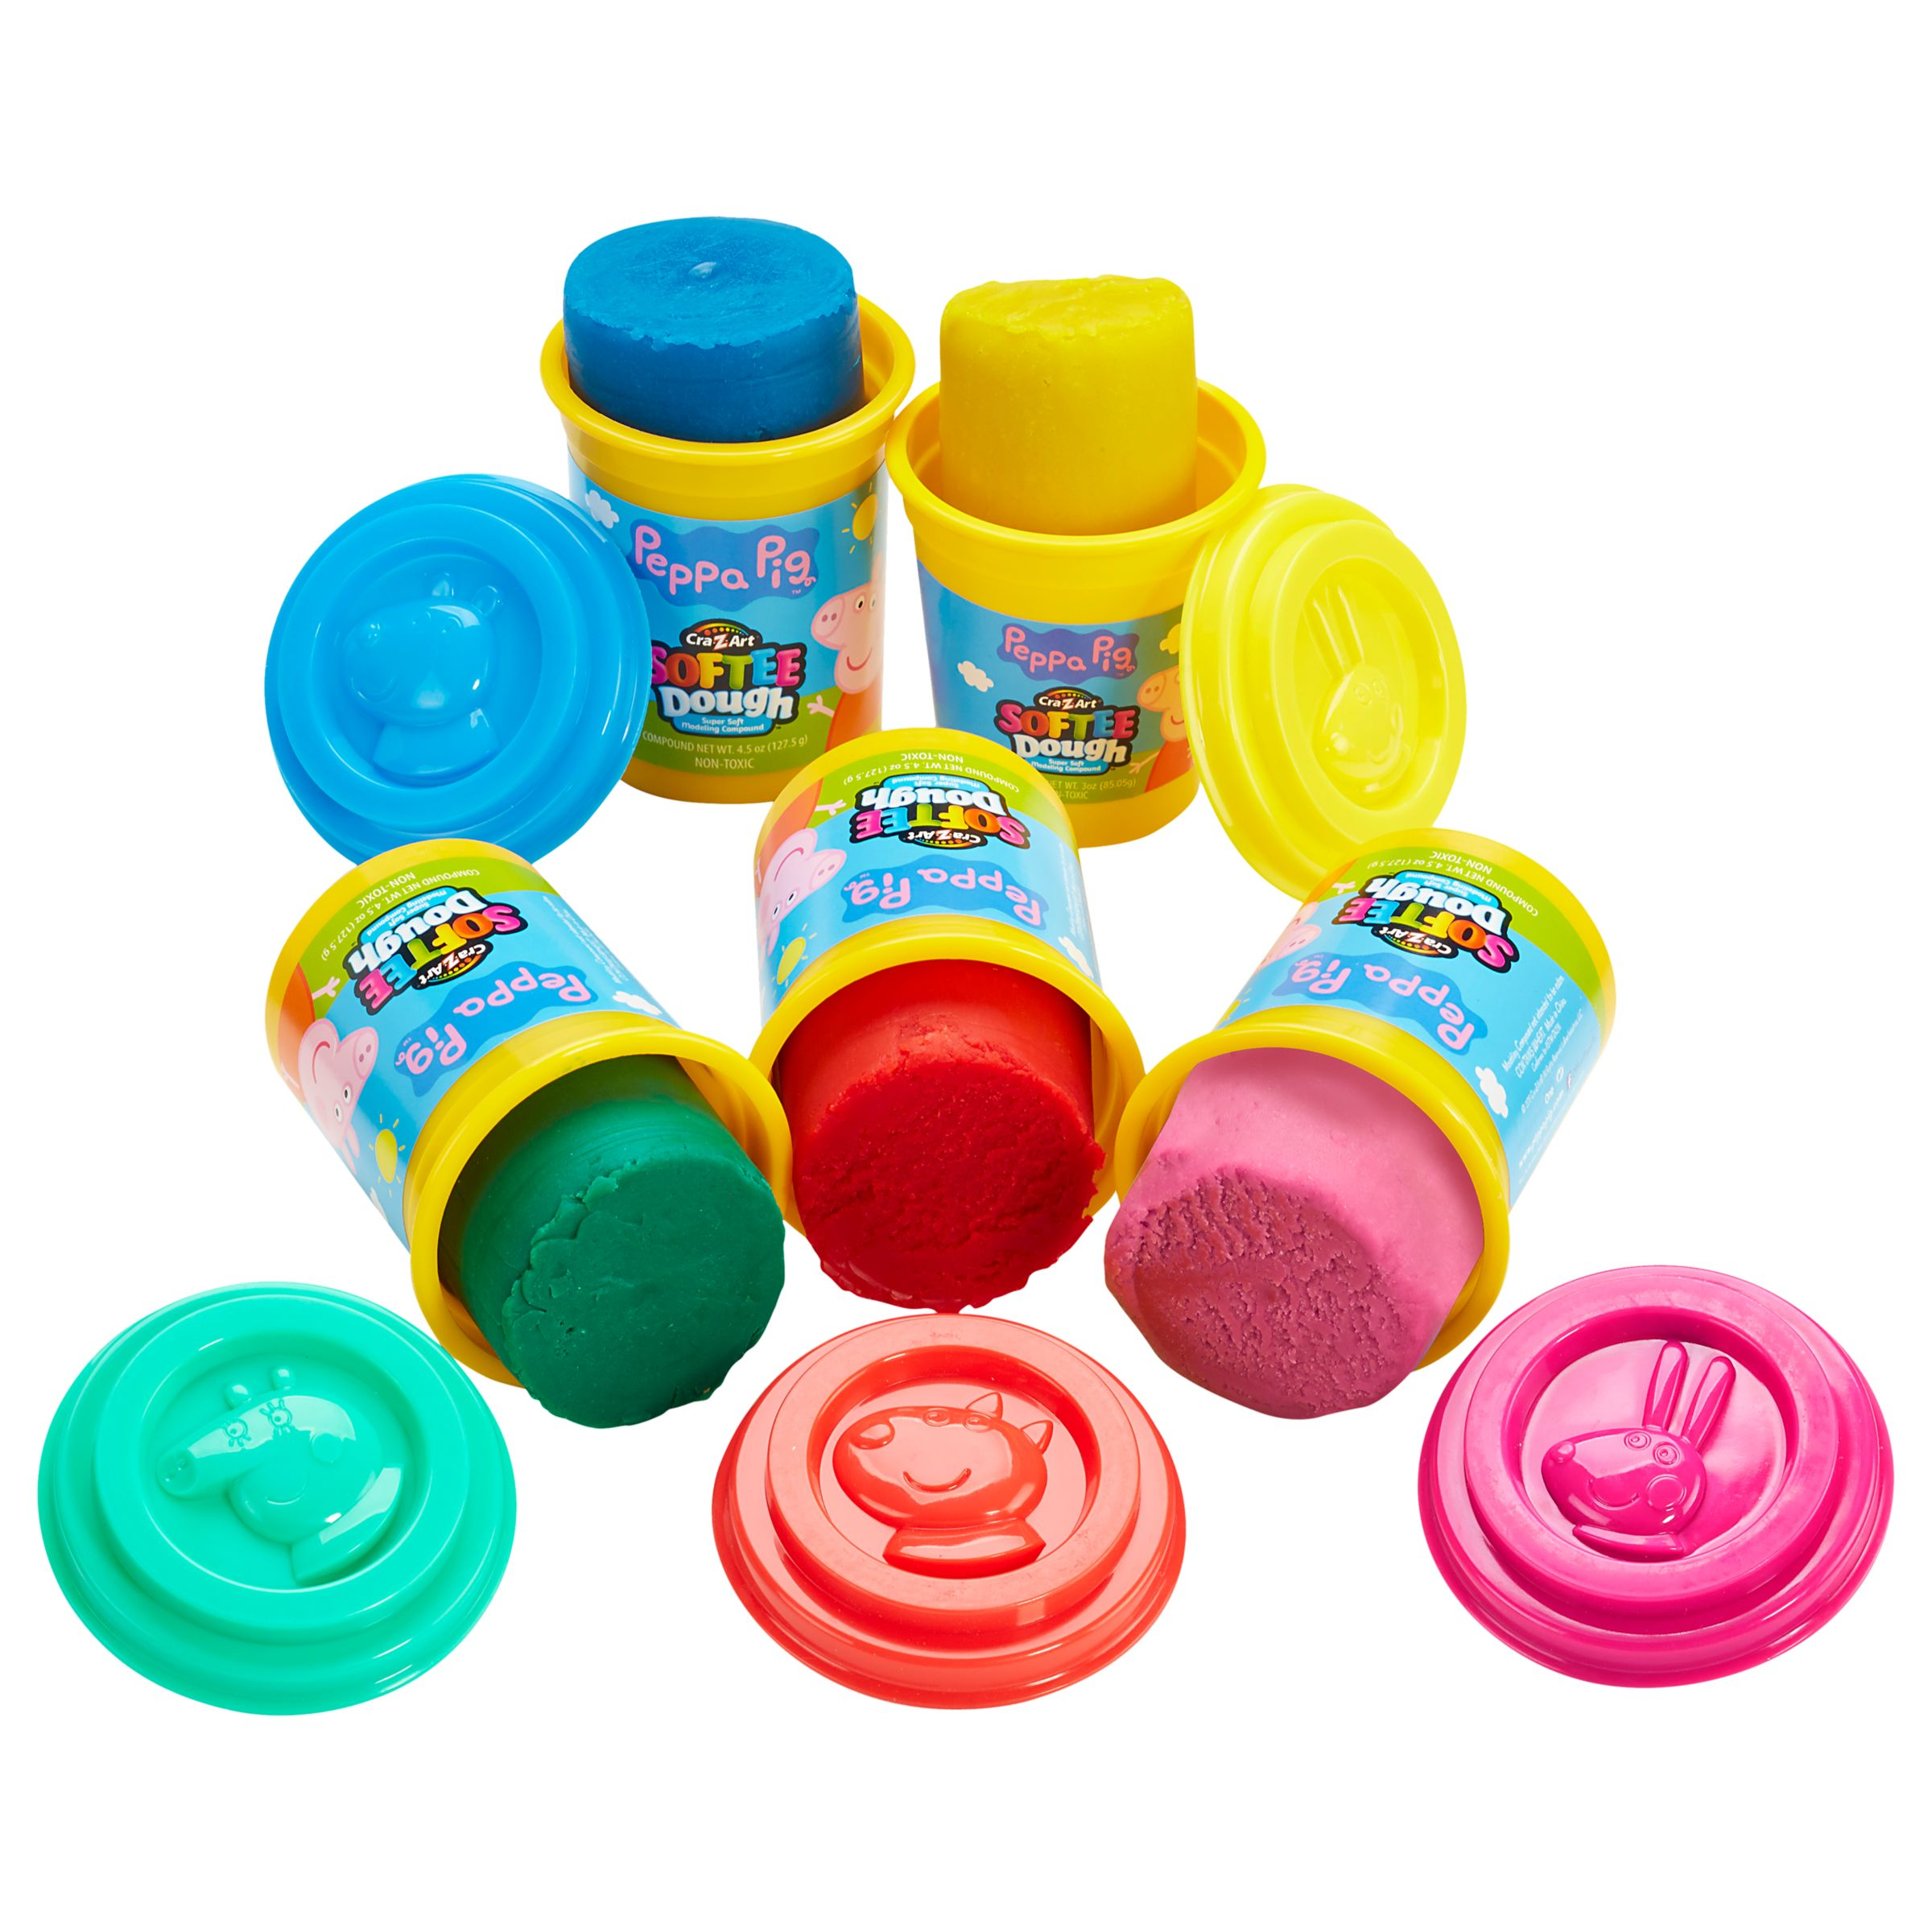 Peppa Pig Peppa Pig Dough, Pack of 5, Assorted Styles/Colour